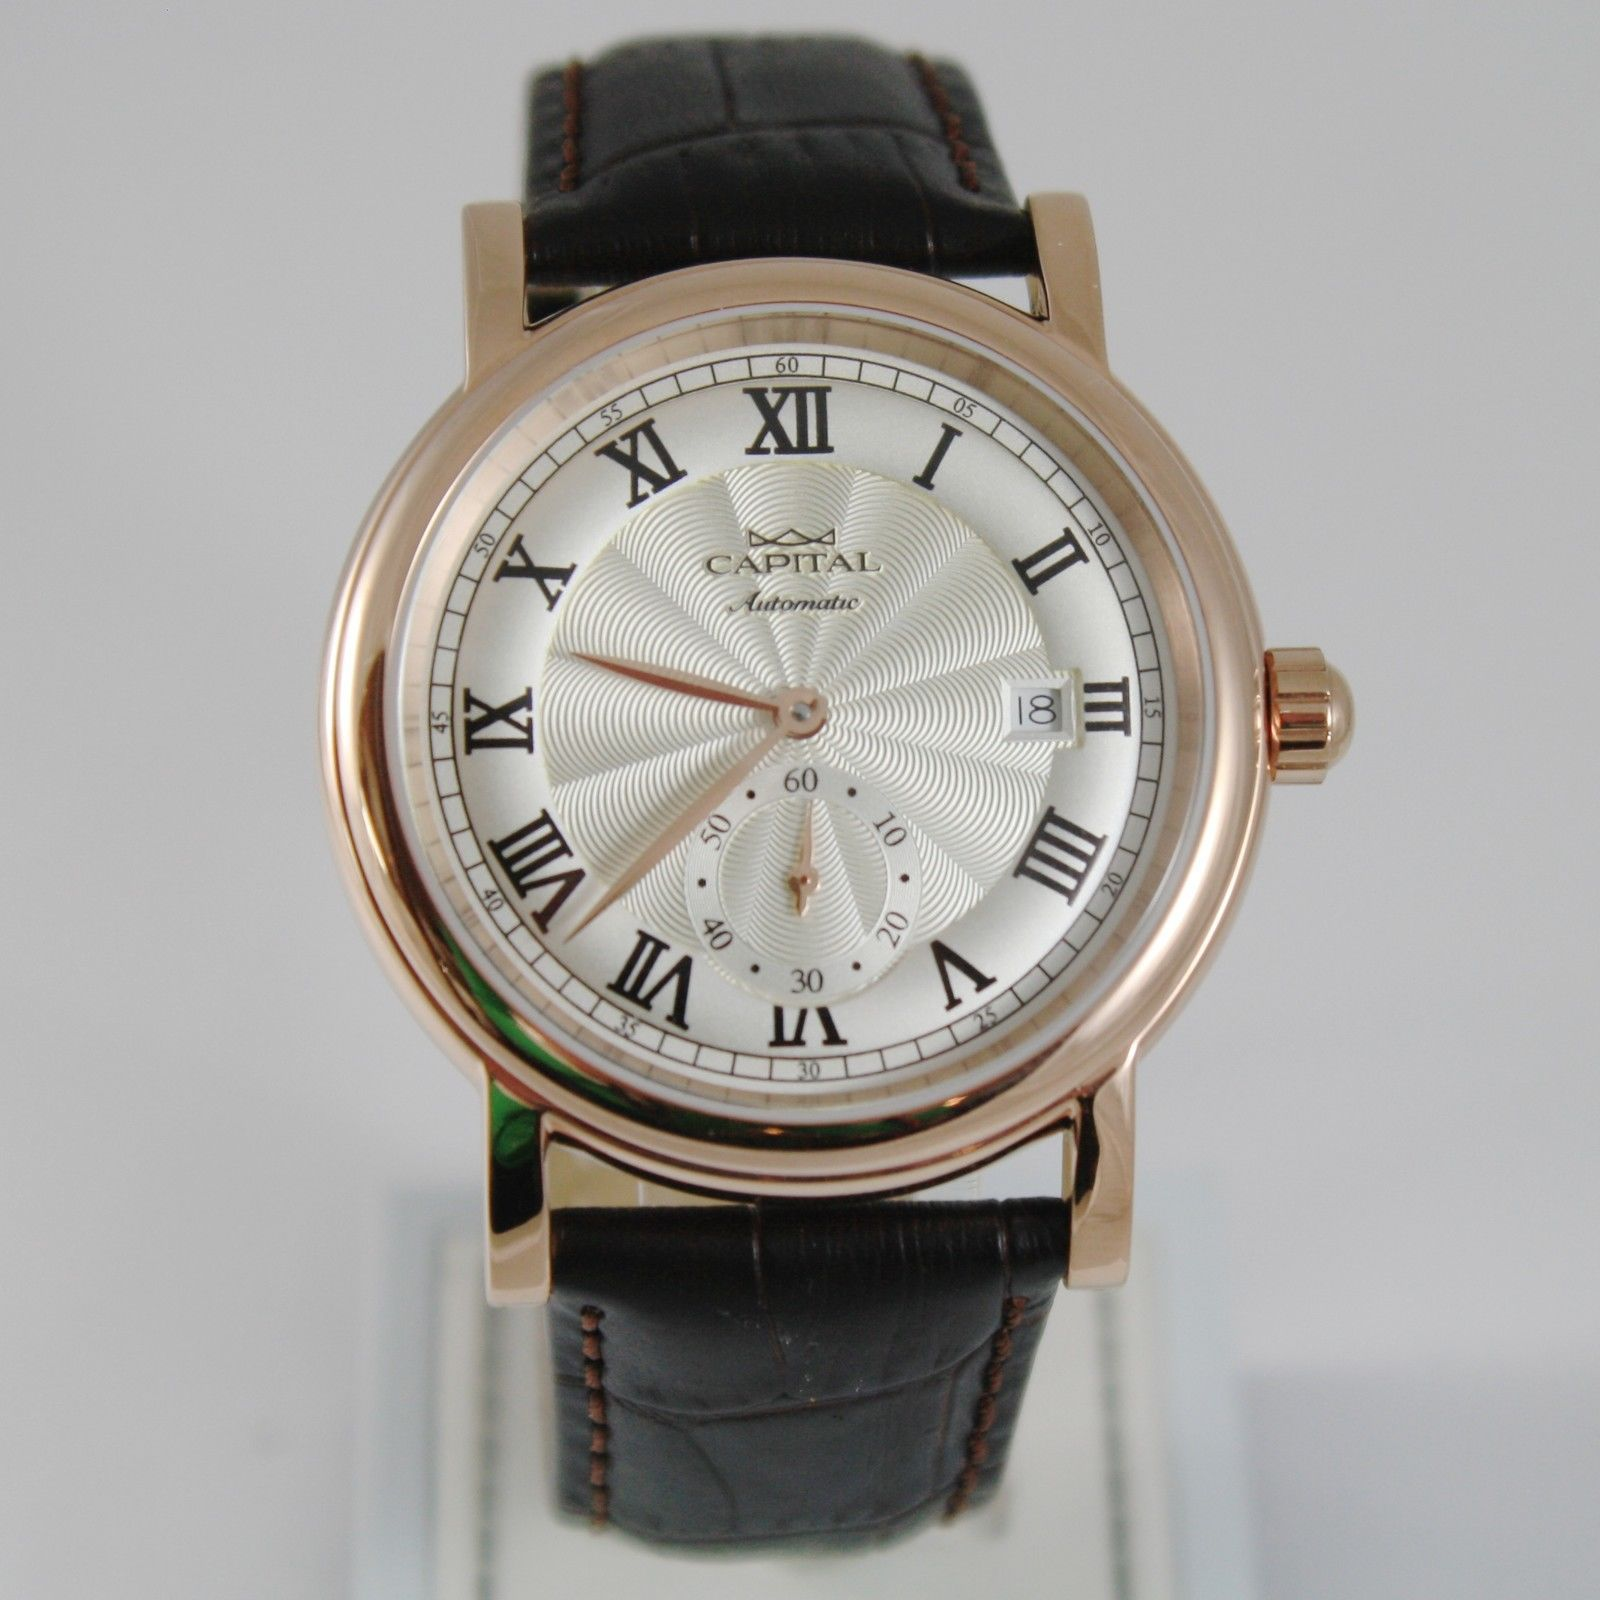 CAPITAL WATCH AUTOMATIC TY2718 MOVEMENT 41 MM PINK CASE ROMAN NUMBER retrò style